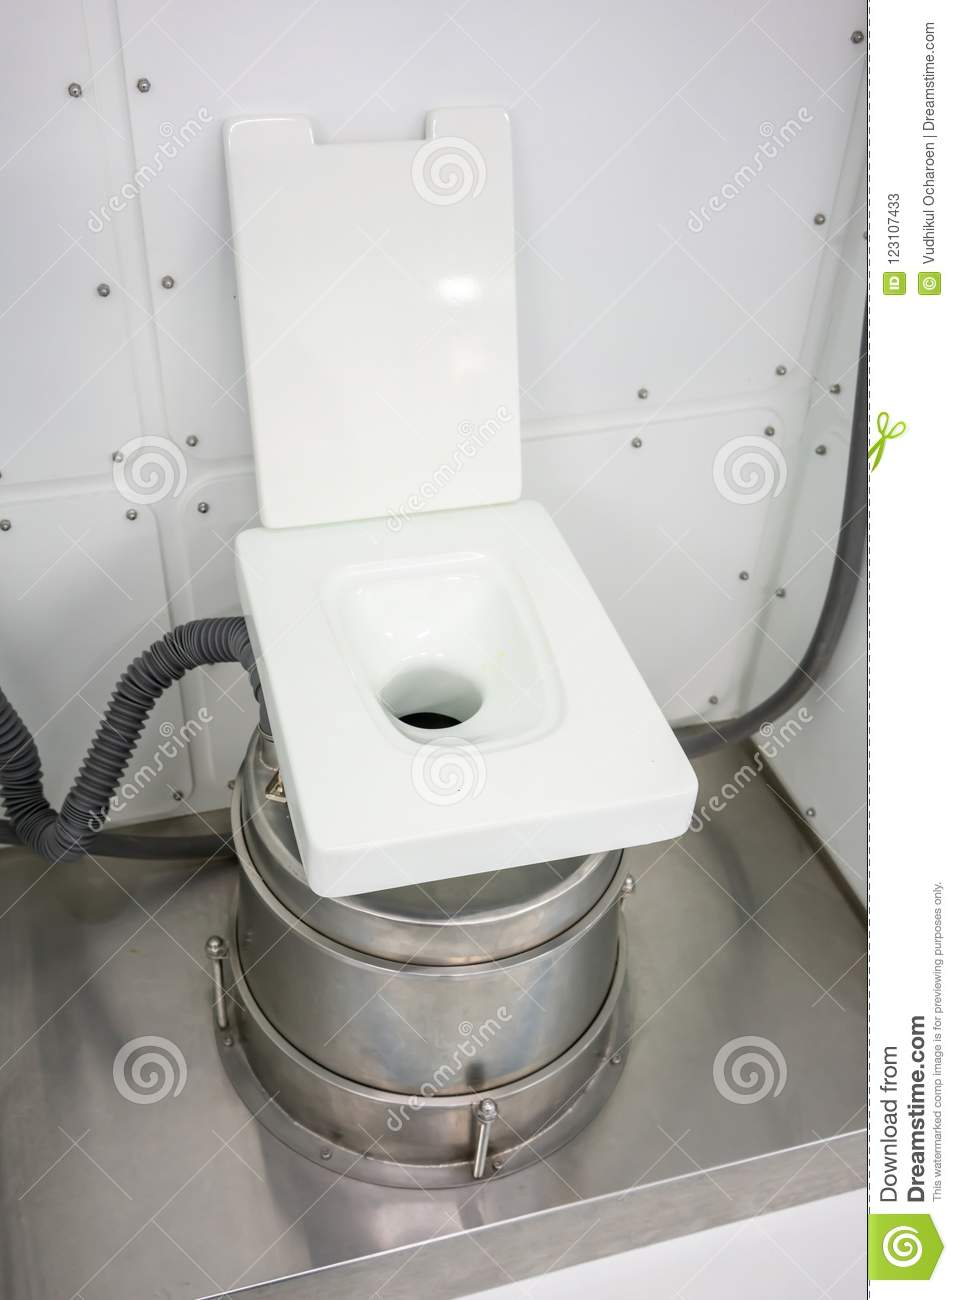 Lavatory Room Inside The Space Station. Empty Toilet With A Toil ...